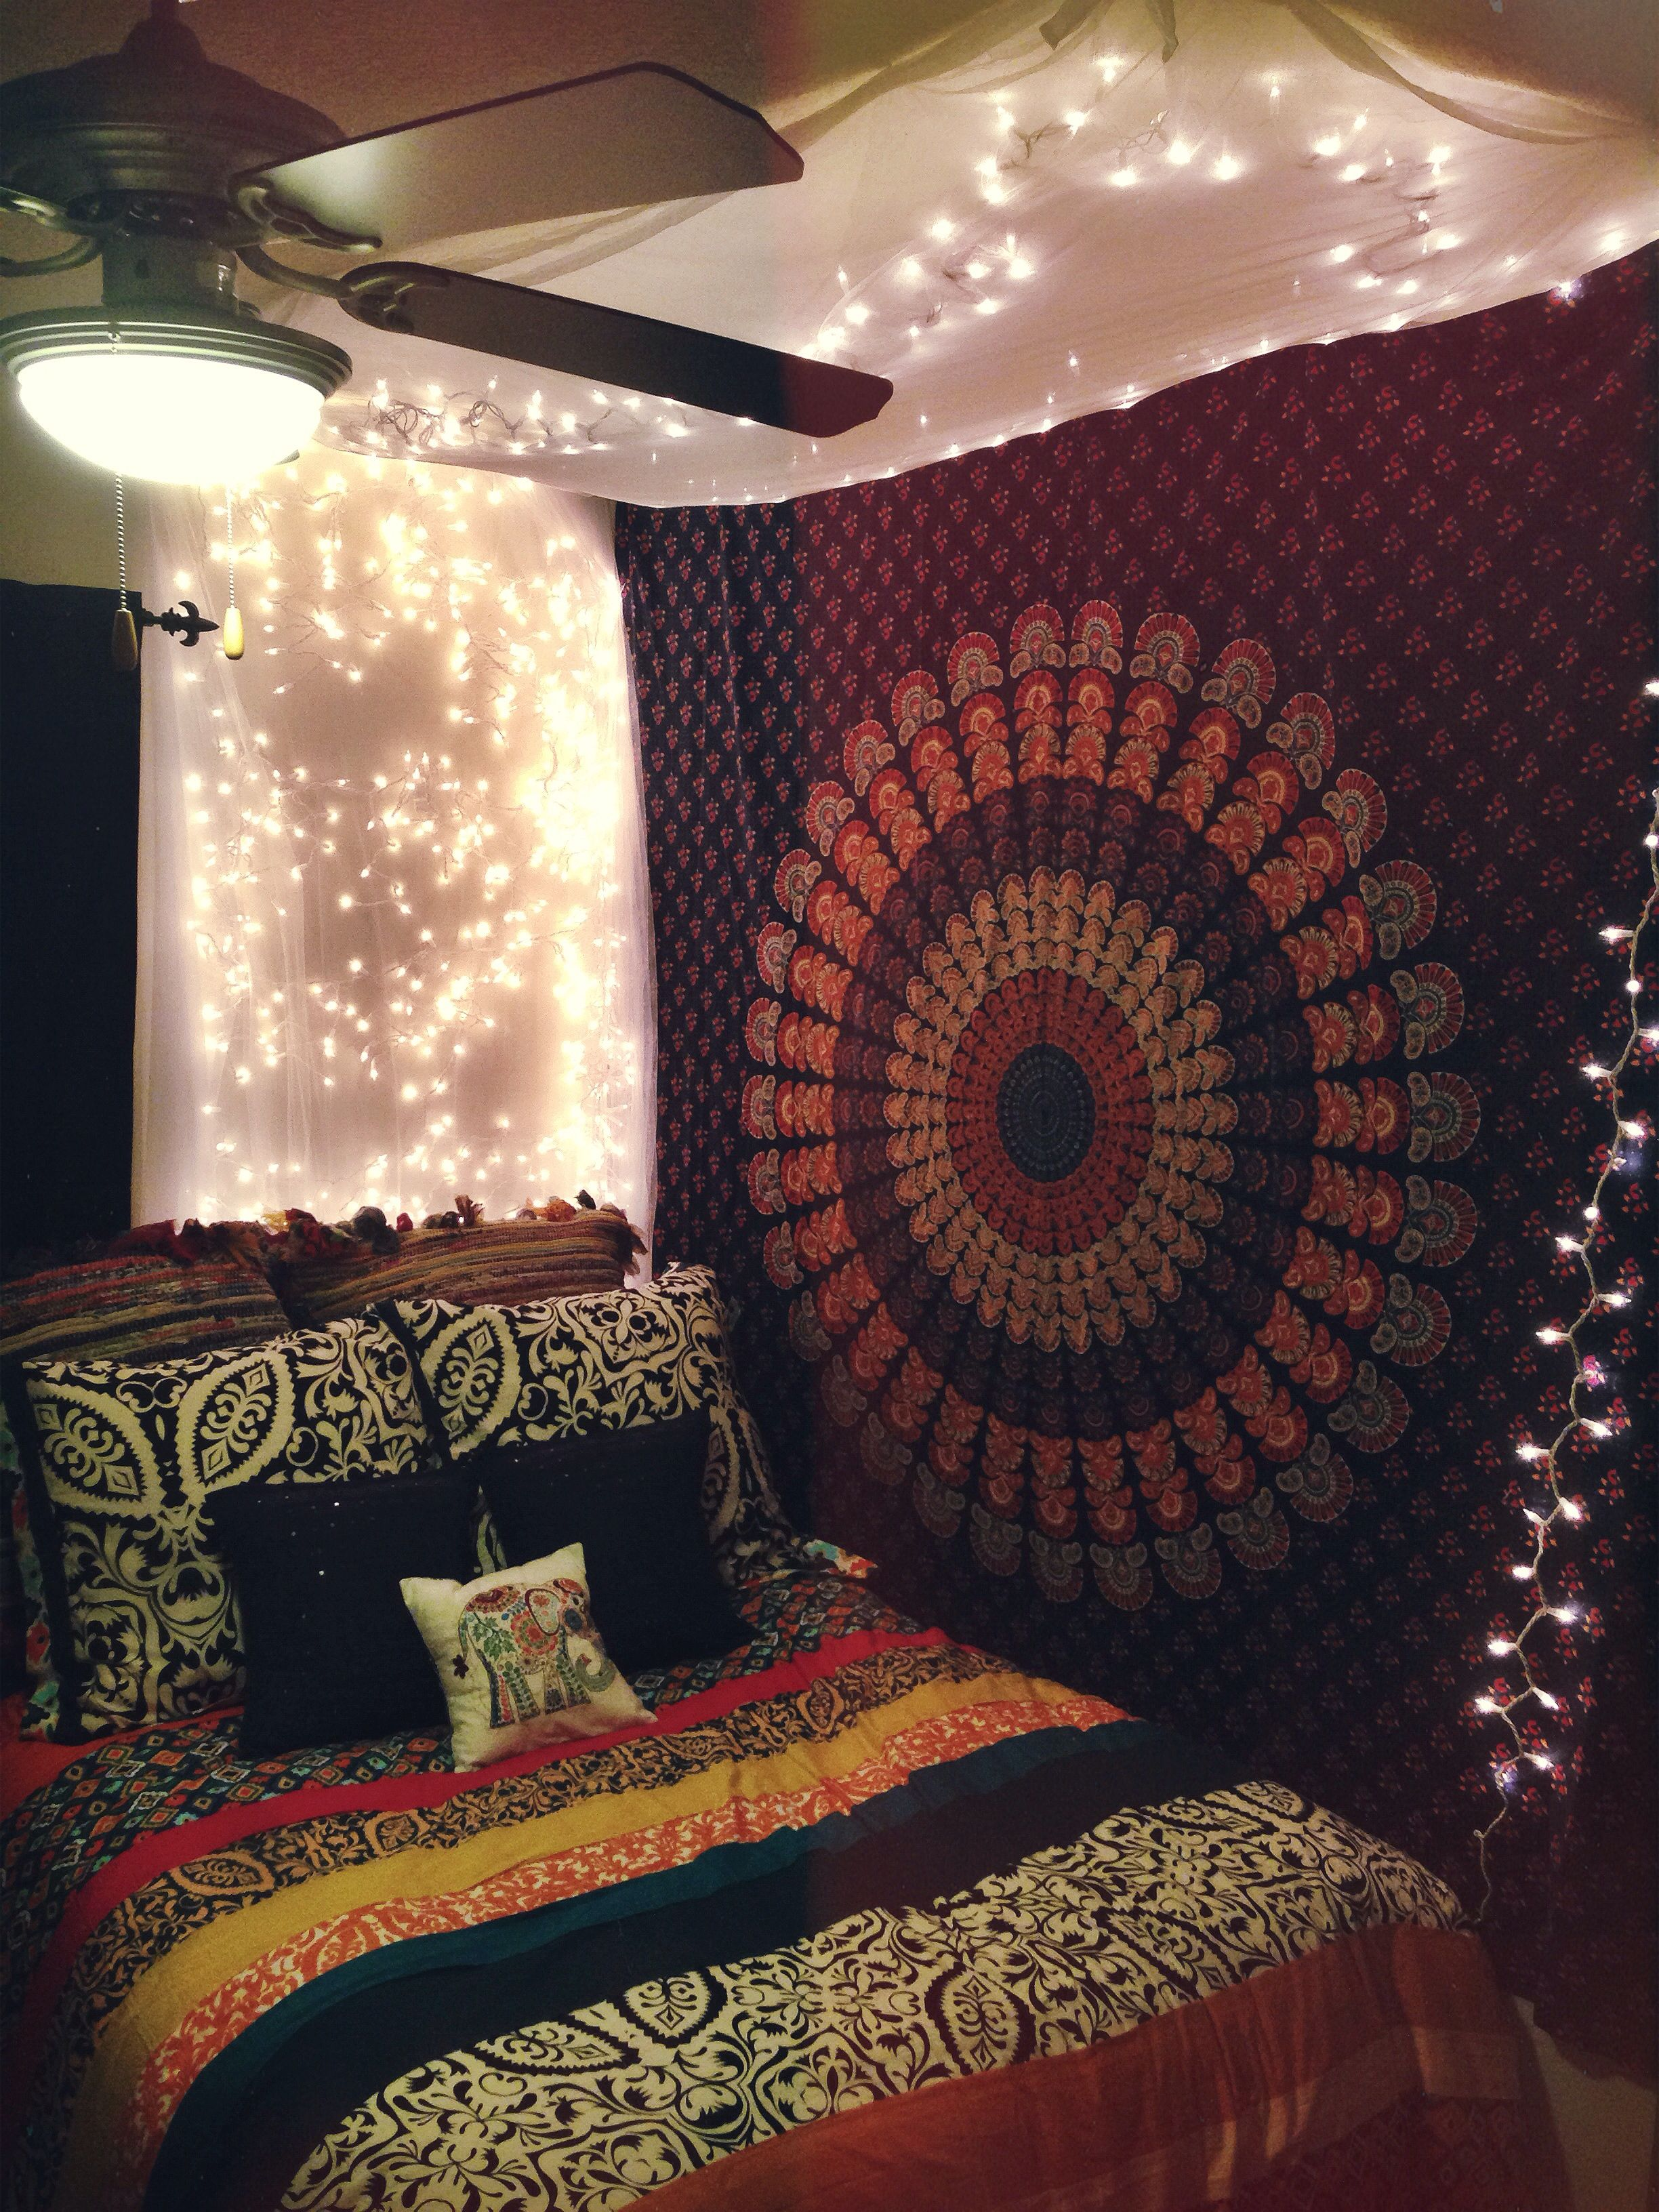 High Quality Anthropologie Florence Bedding, Bed Canopy With Christmas Lights, And Boho  Tapestry All In My College Apartment Bedroom (brighter Colors)